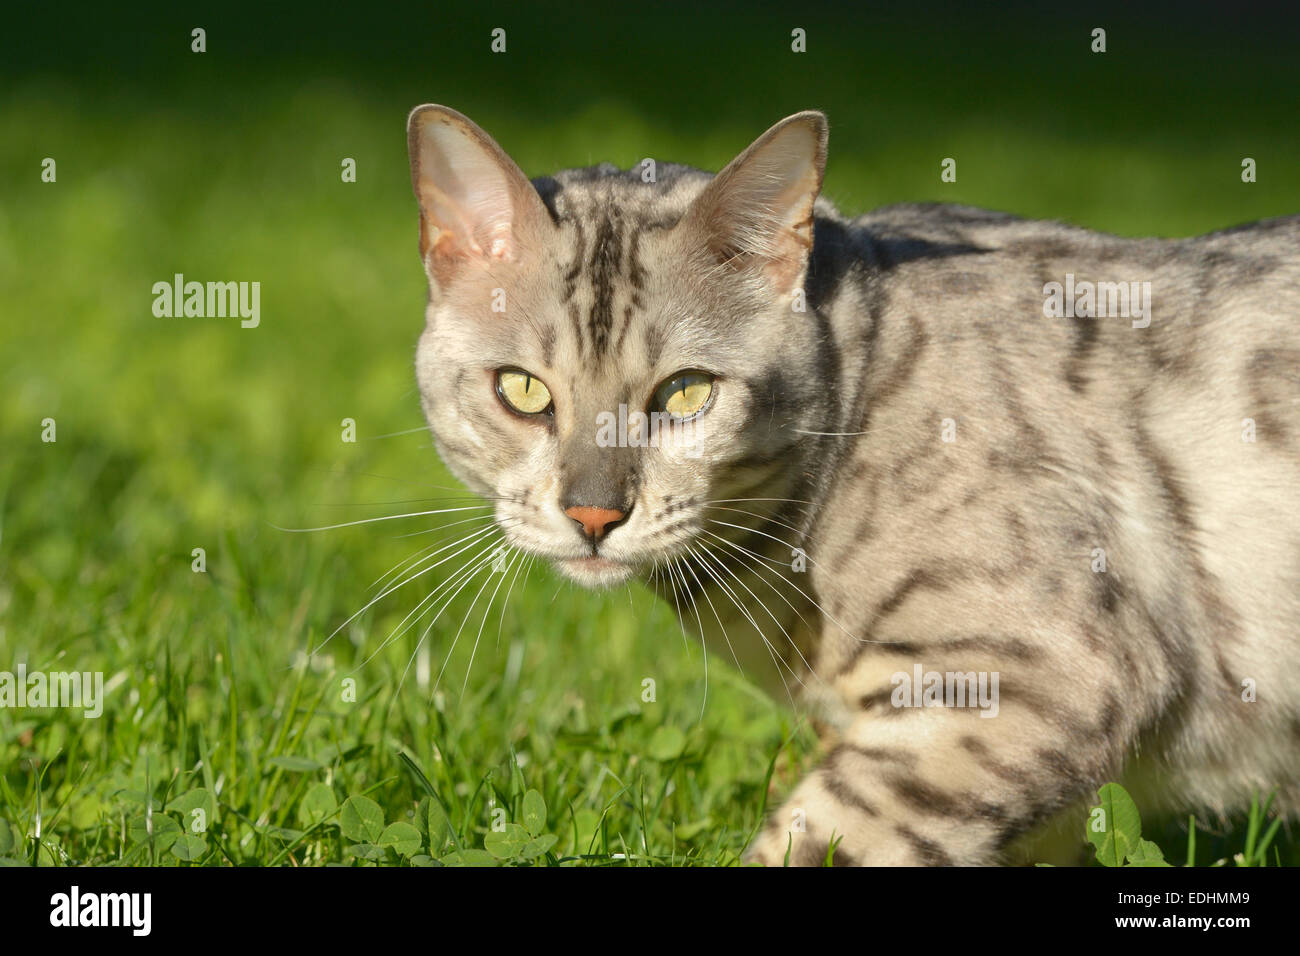 Leopard tomcat (Prionailurus bengalensis) in the garden, domestic animal - Stock Image